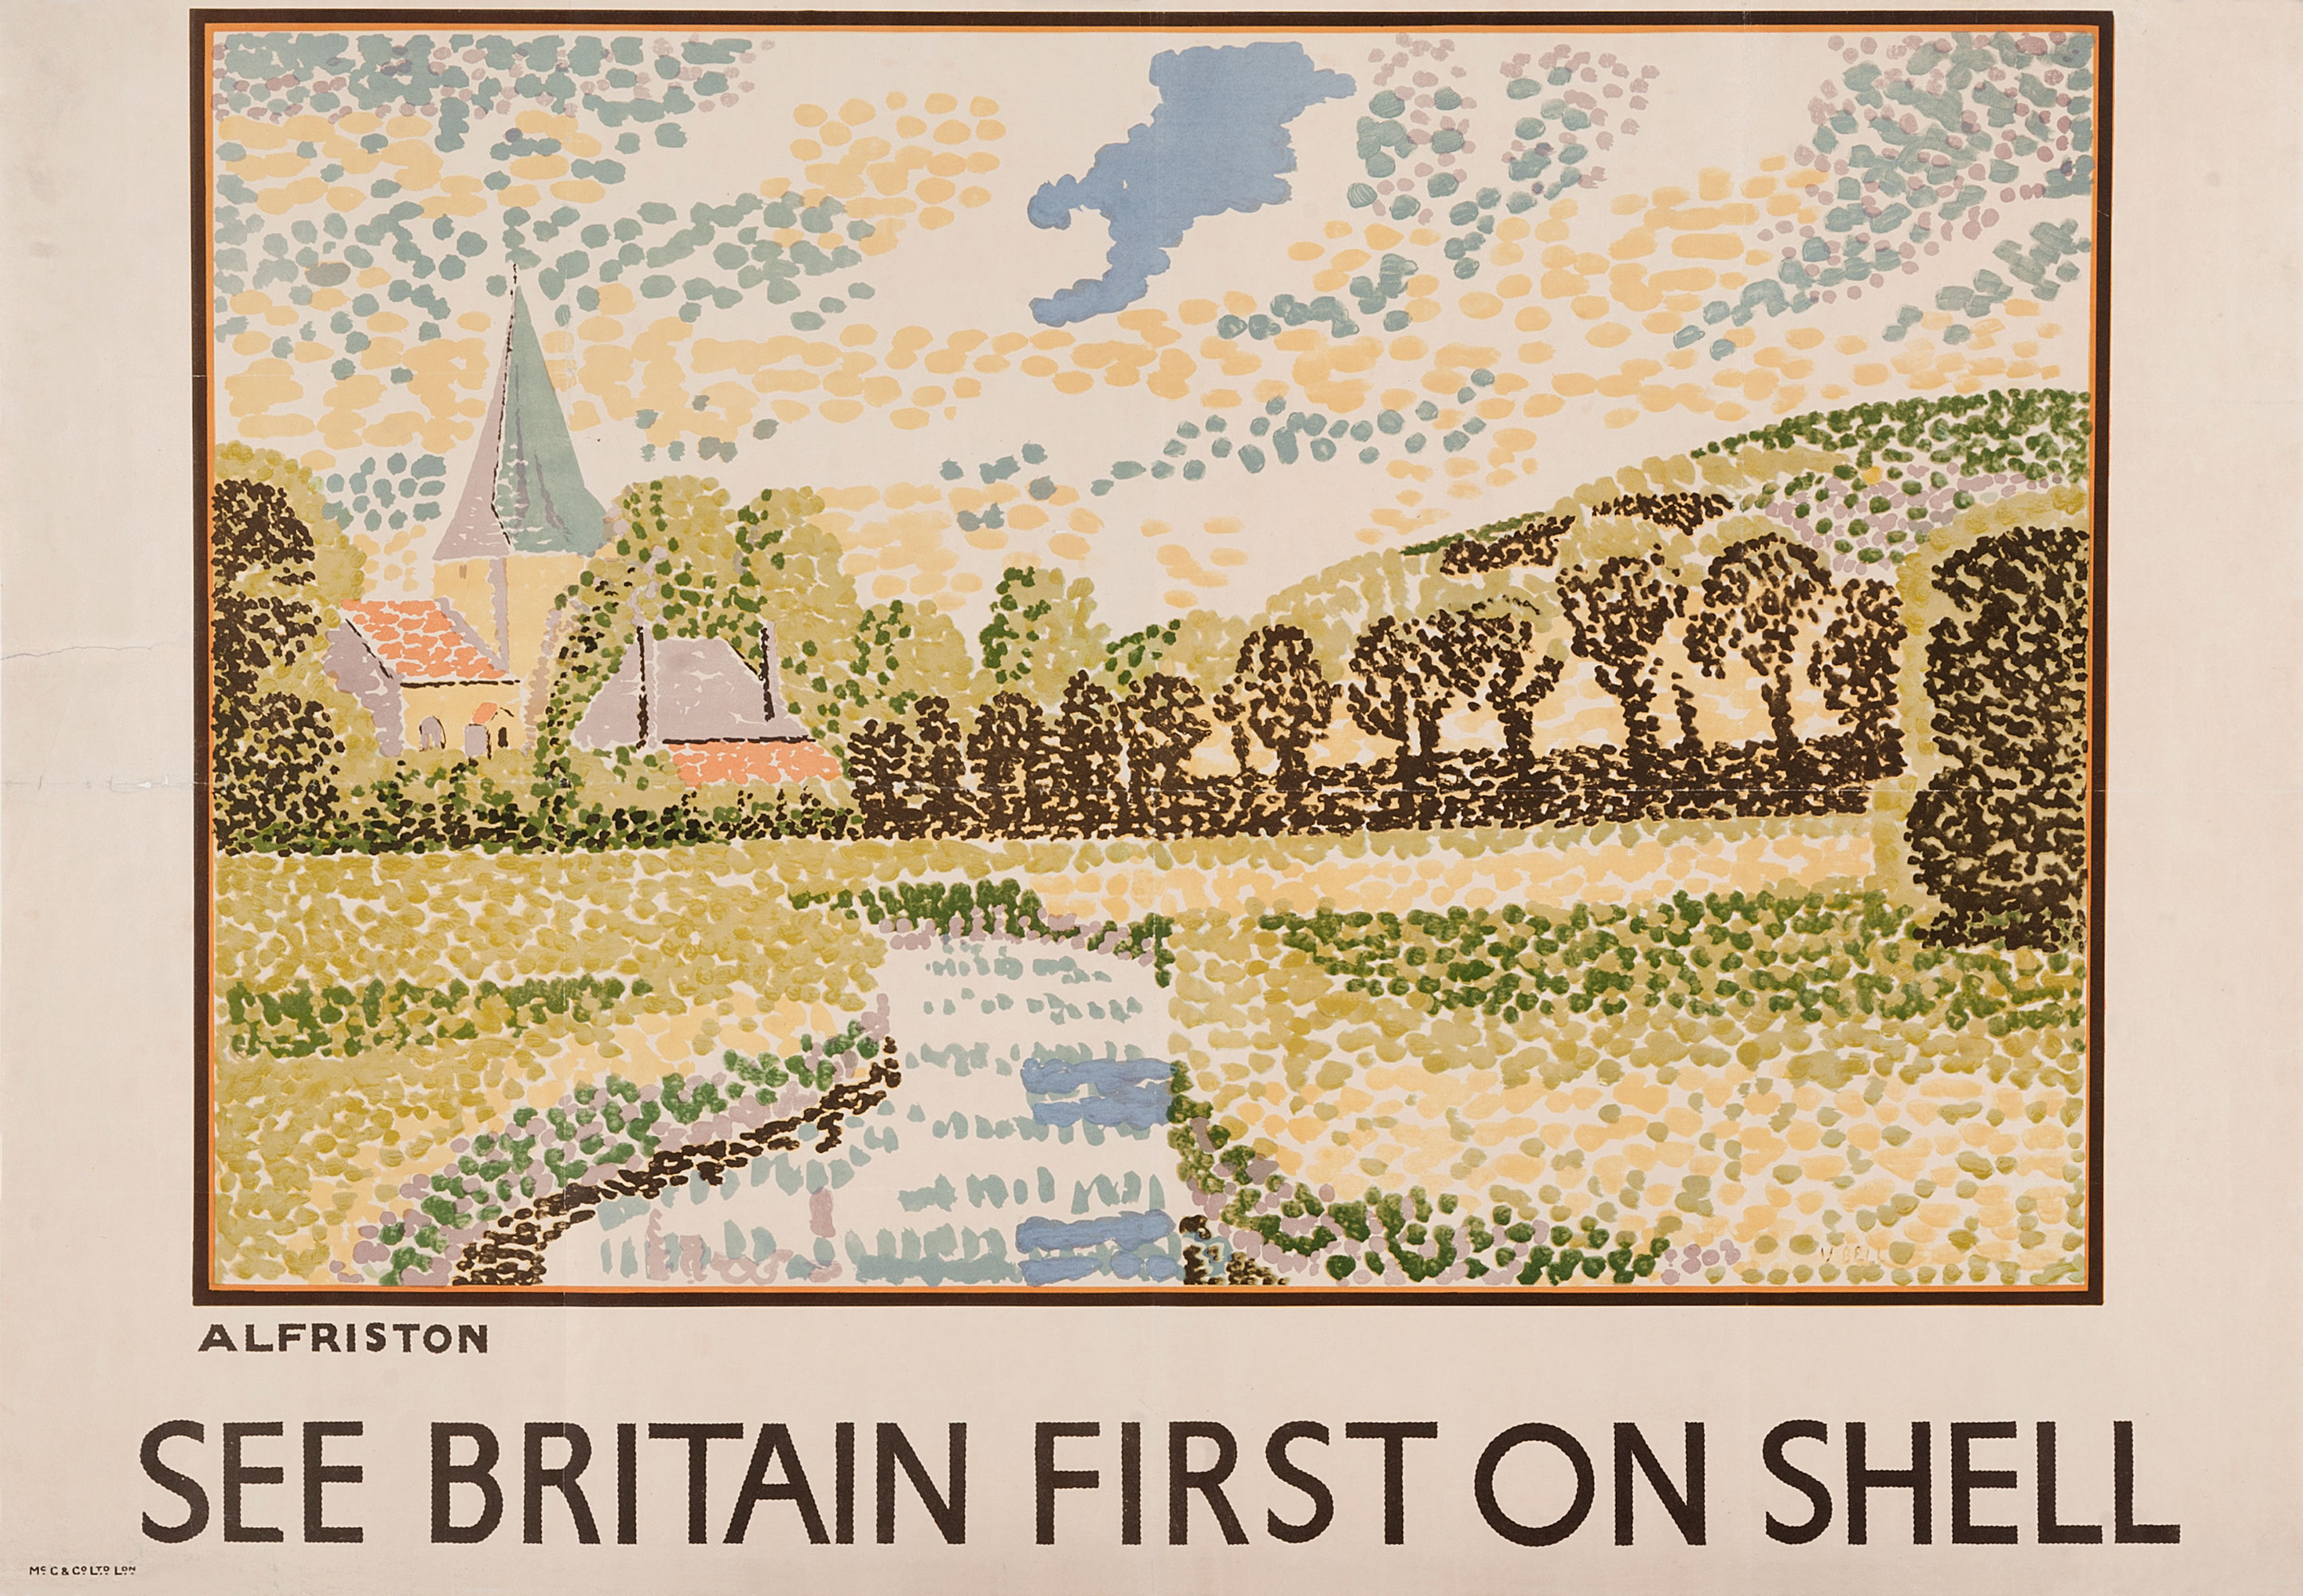 Shell poster number 295, Alfriston by Vanessa Bell in Pointillism style. Landscape scene with church in background.